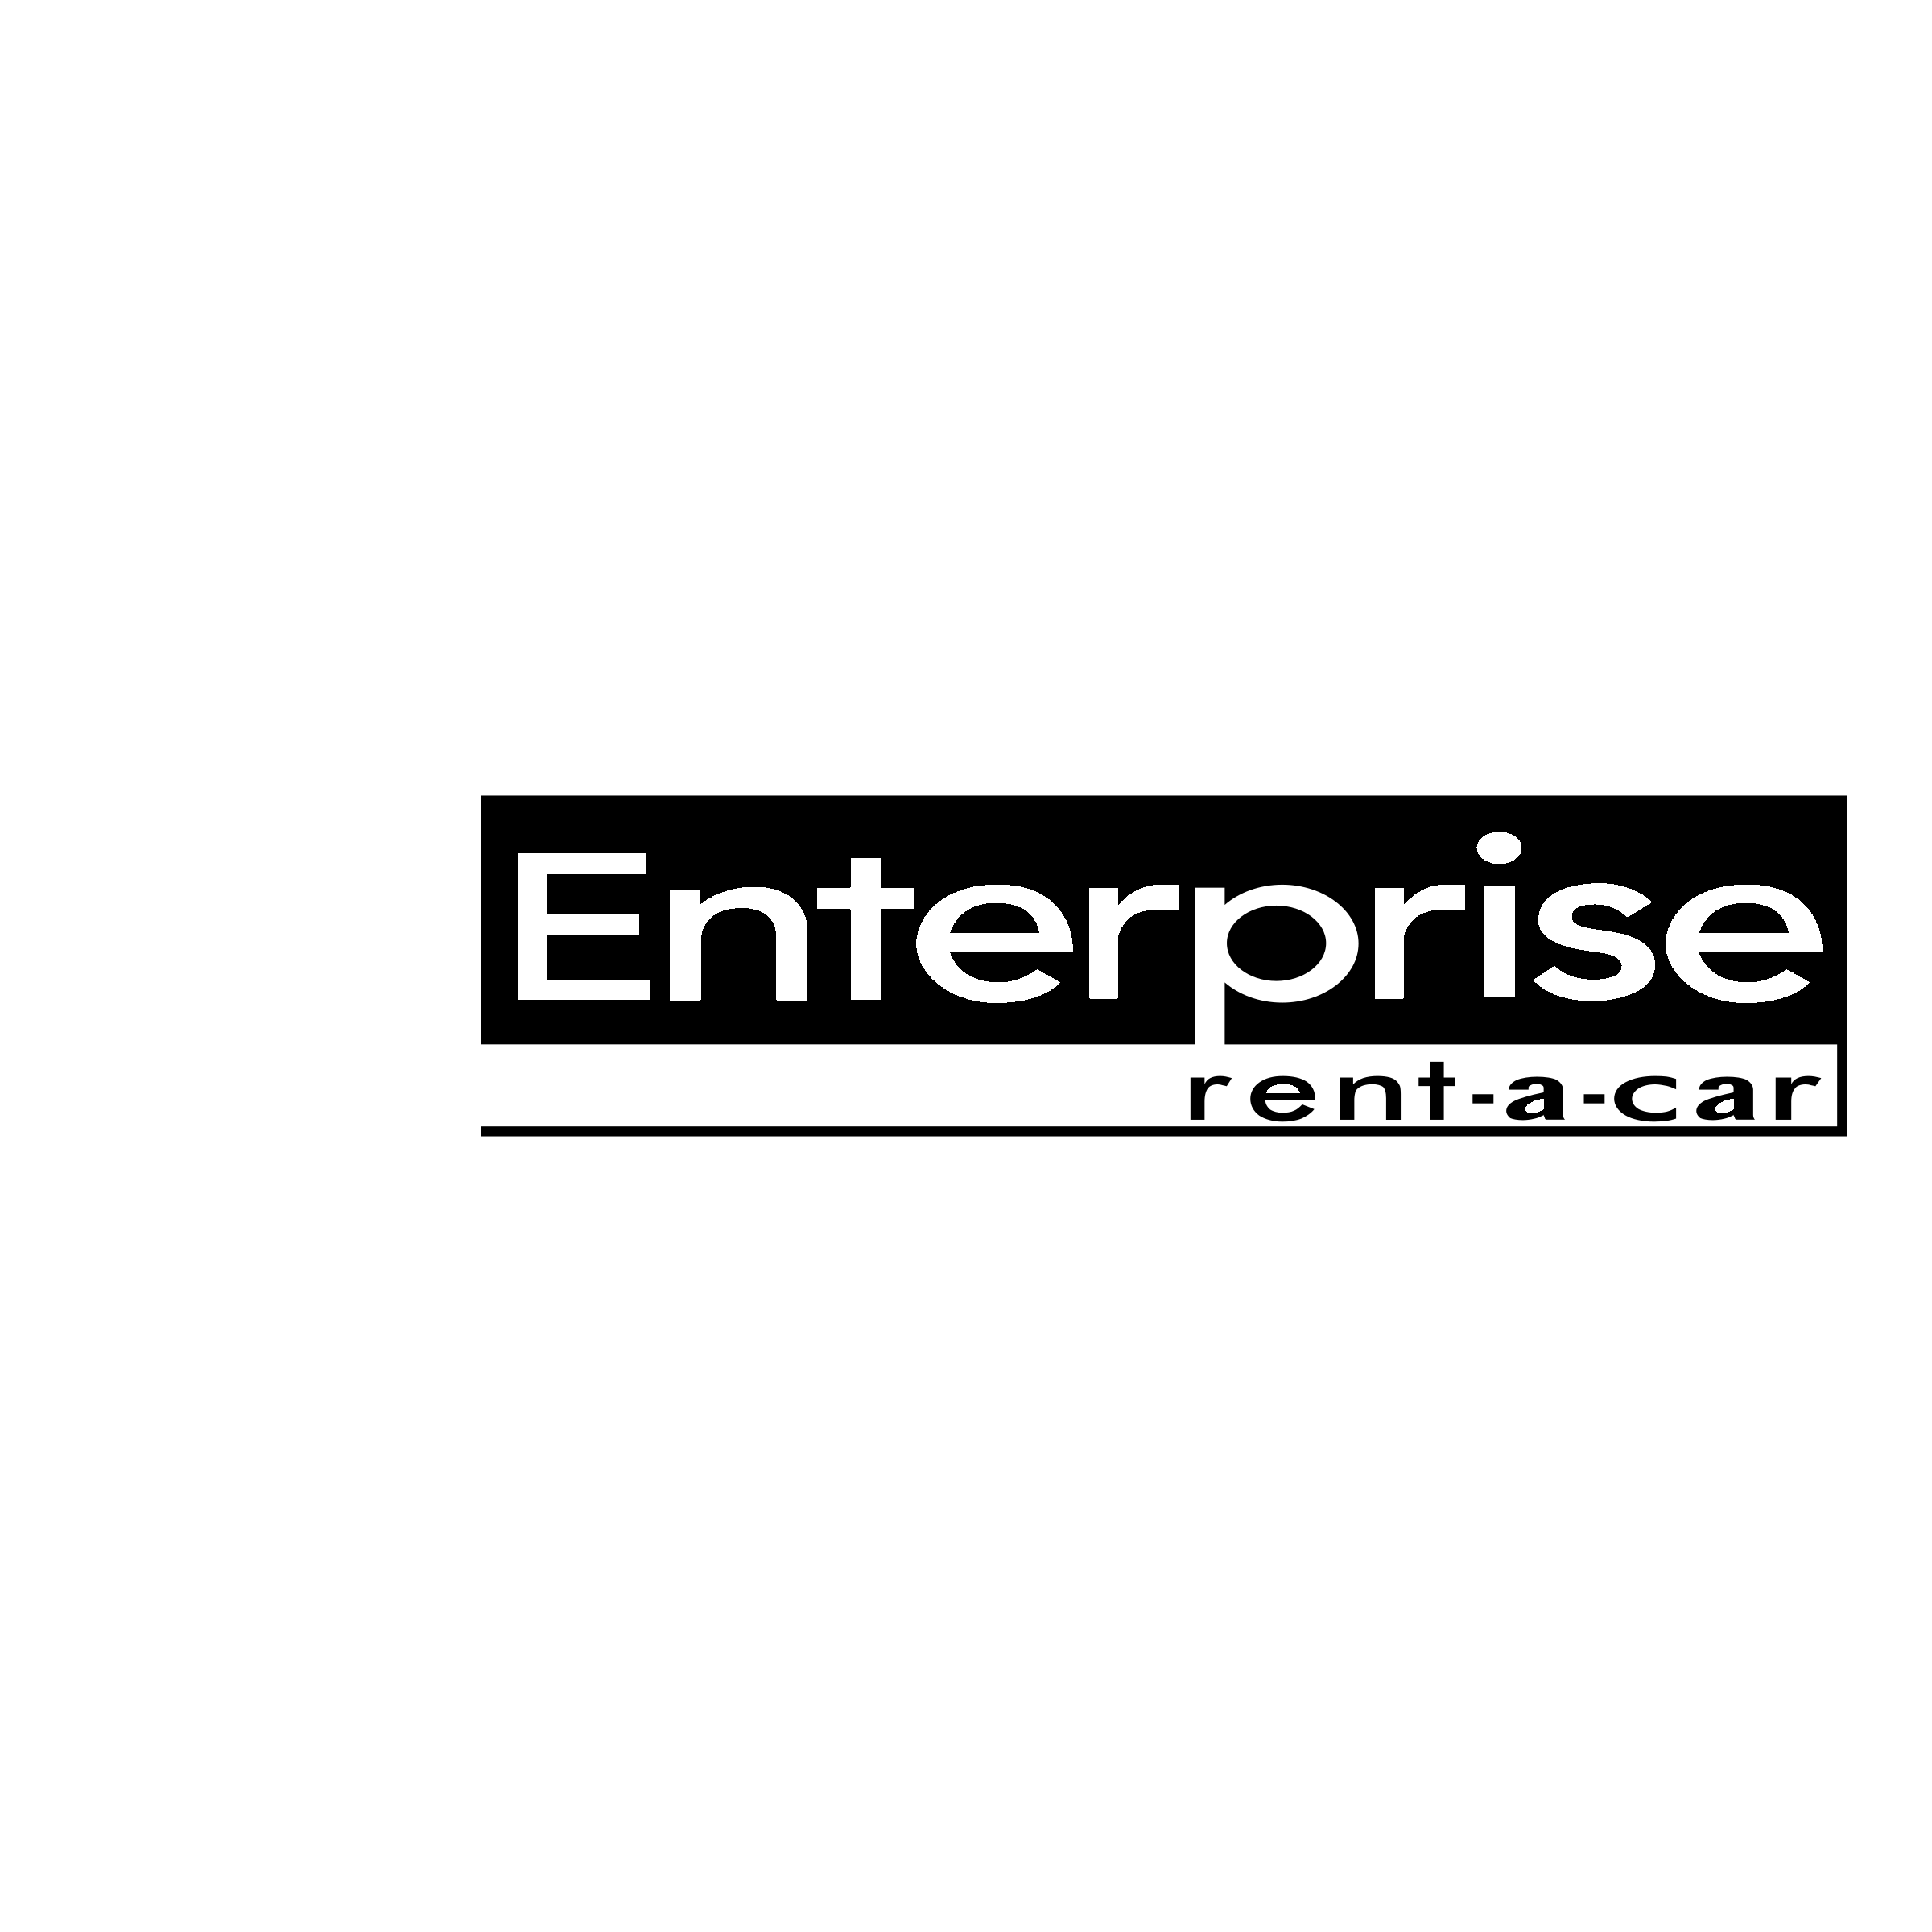 Enterprise Rent A Car Logo Png Transparent Svg Vector Freebie Supply